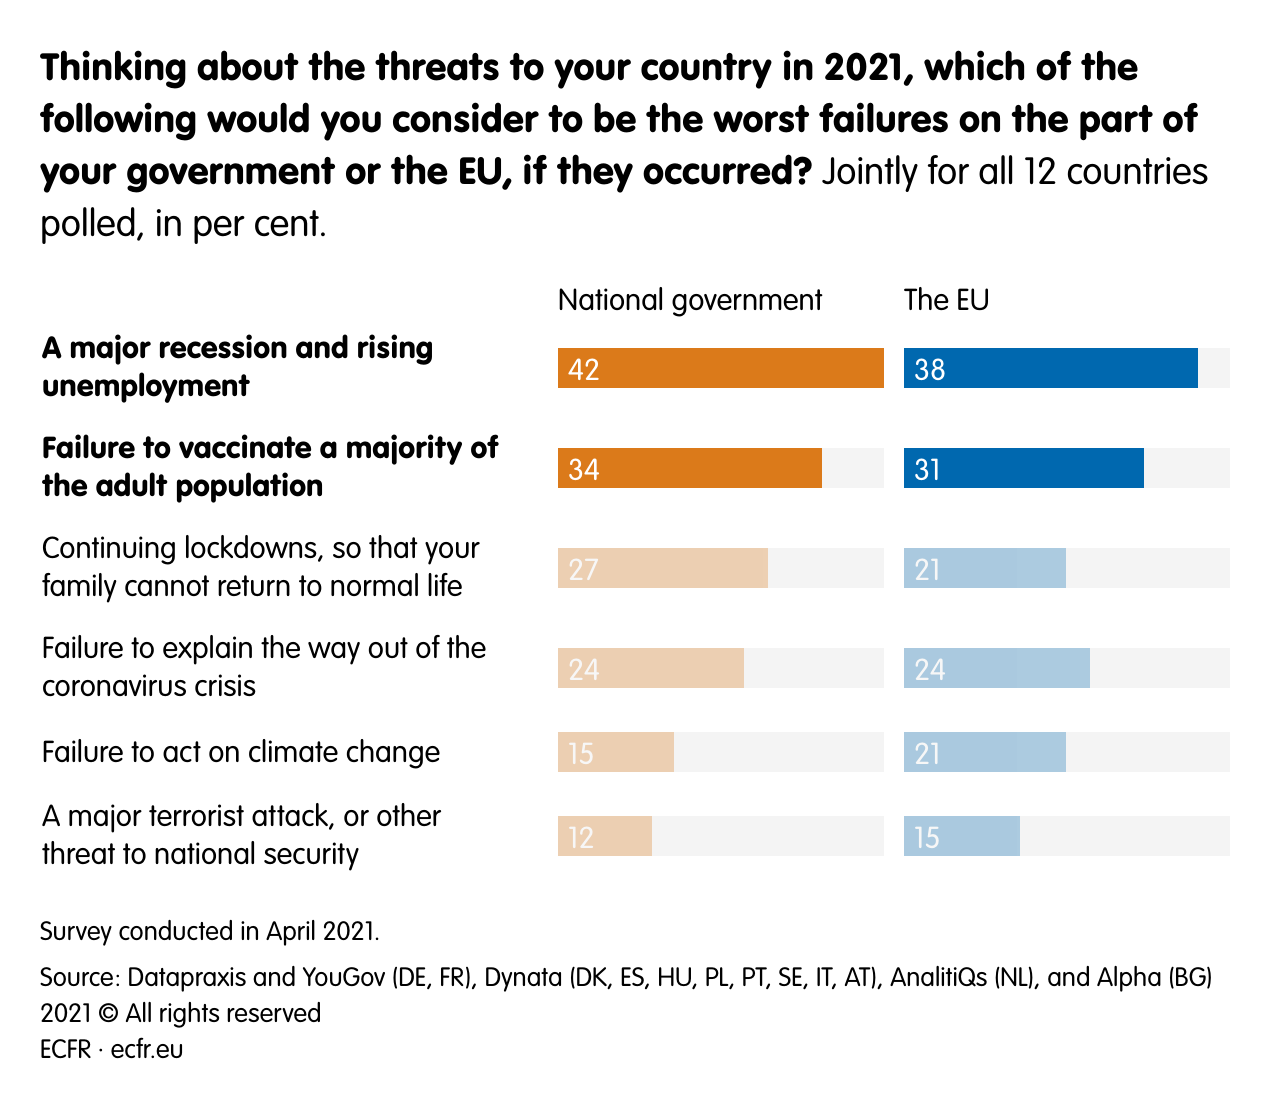 Thinking about the threats to your country in 2021, which of the following would you consider to be the worst failures on the part of your government or the EU, if they occurred?